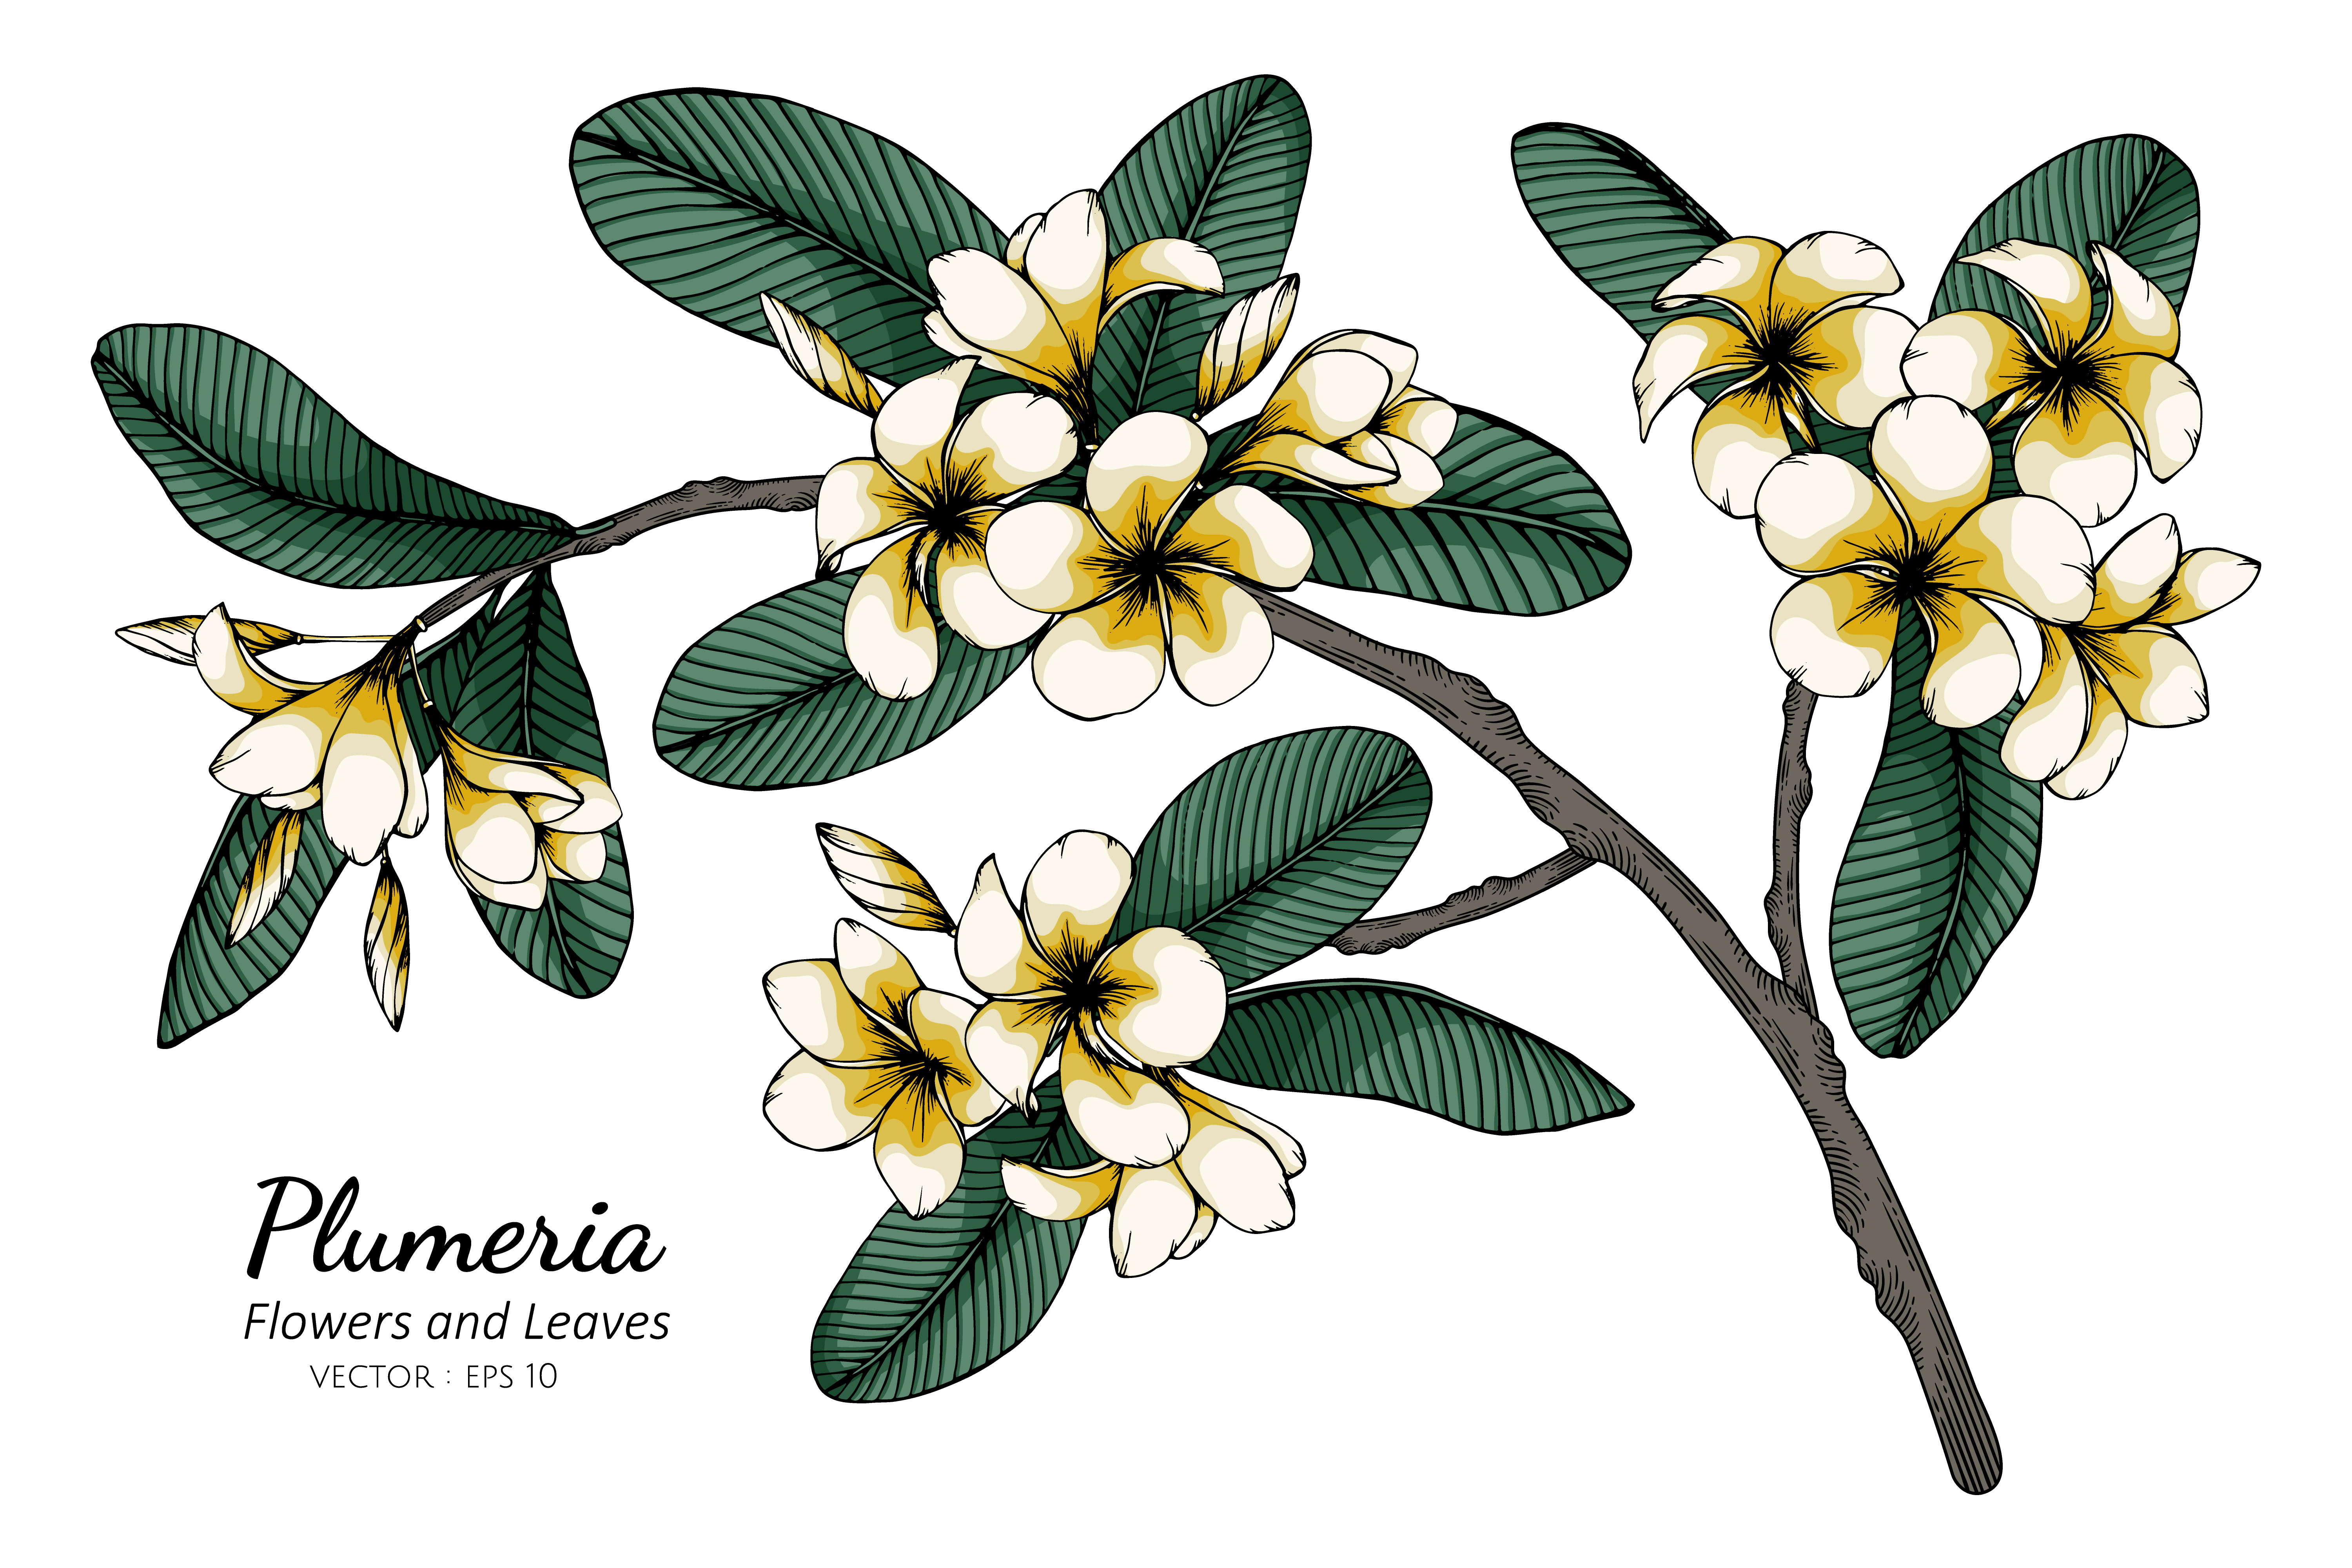 Plumeria Flower And Leaf Drawing Download Free Vectors Clipart Graphics Vector Art